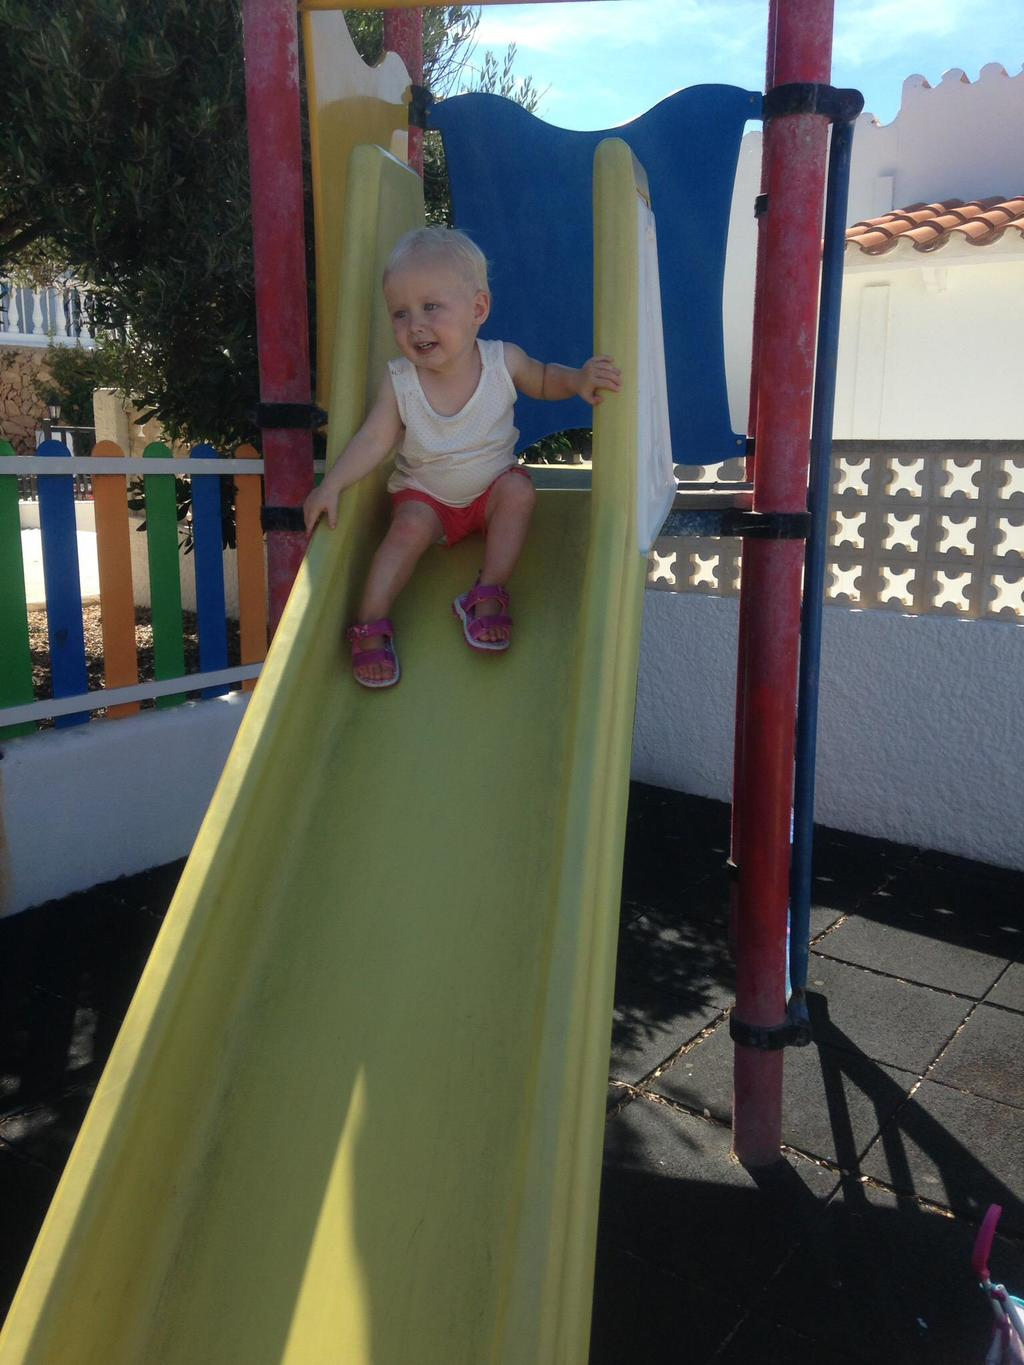 Zara in slide